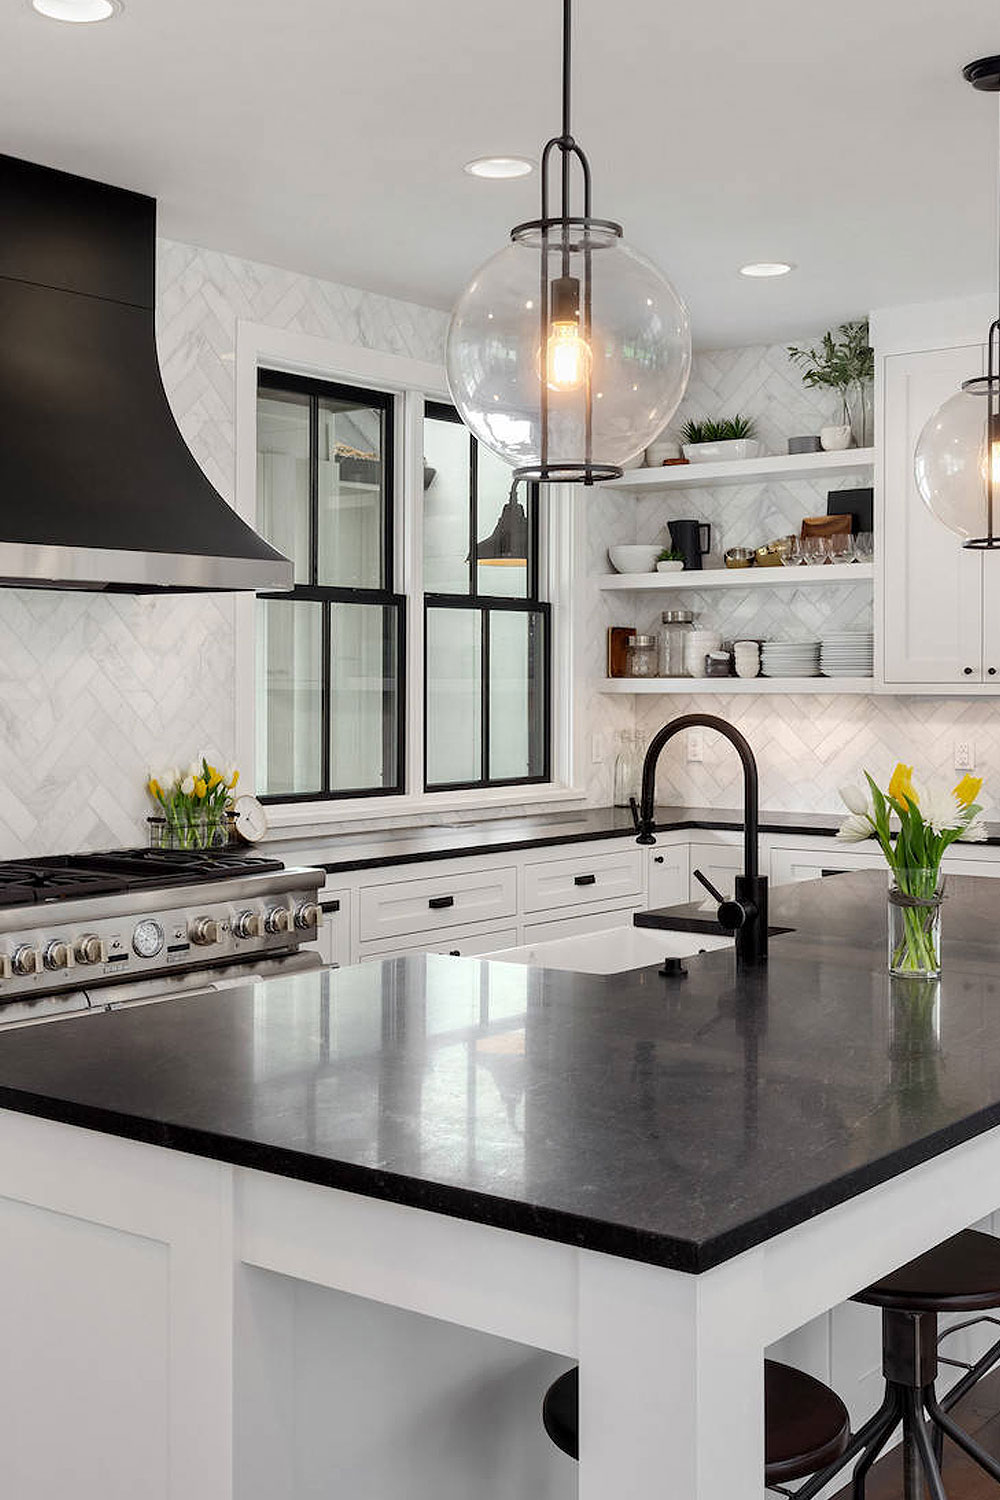 50+ Black Countertop Backsplash Ideas (Tile Designs, Tips ... on Backsplash For Black Granite Countertops And White Cabinets  id=12094